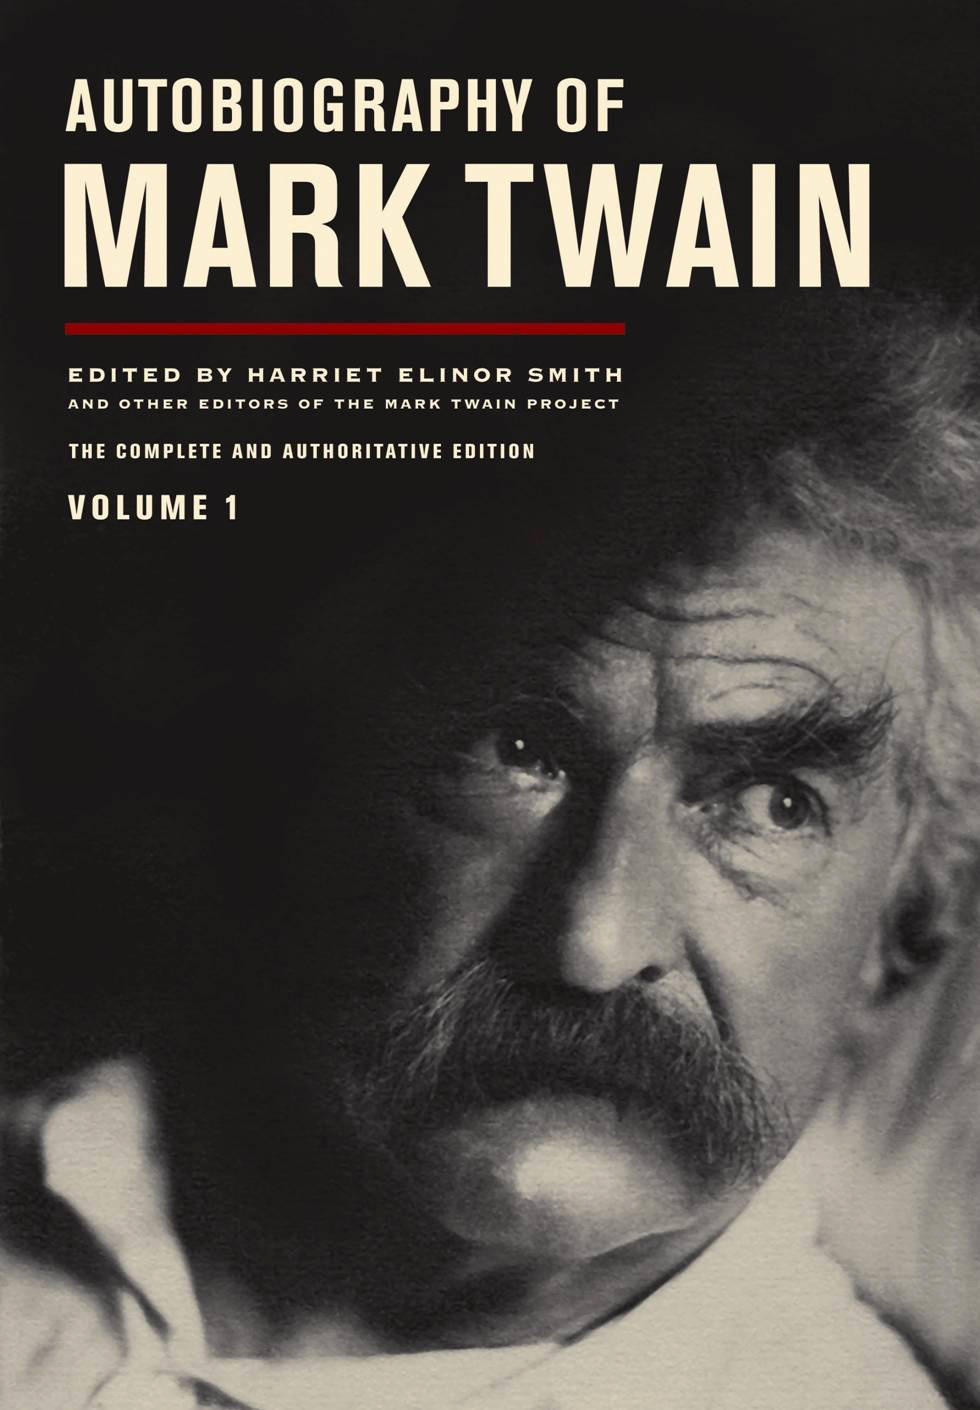 """the life and legacy of mark twain Mark twain was born almost exactly a century before i was into a   life on the mississippi is written with flamboyance and beauty and the affecting   of a brainless and worthless longvanished society"""" as inculcated by the legacy of ."""